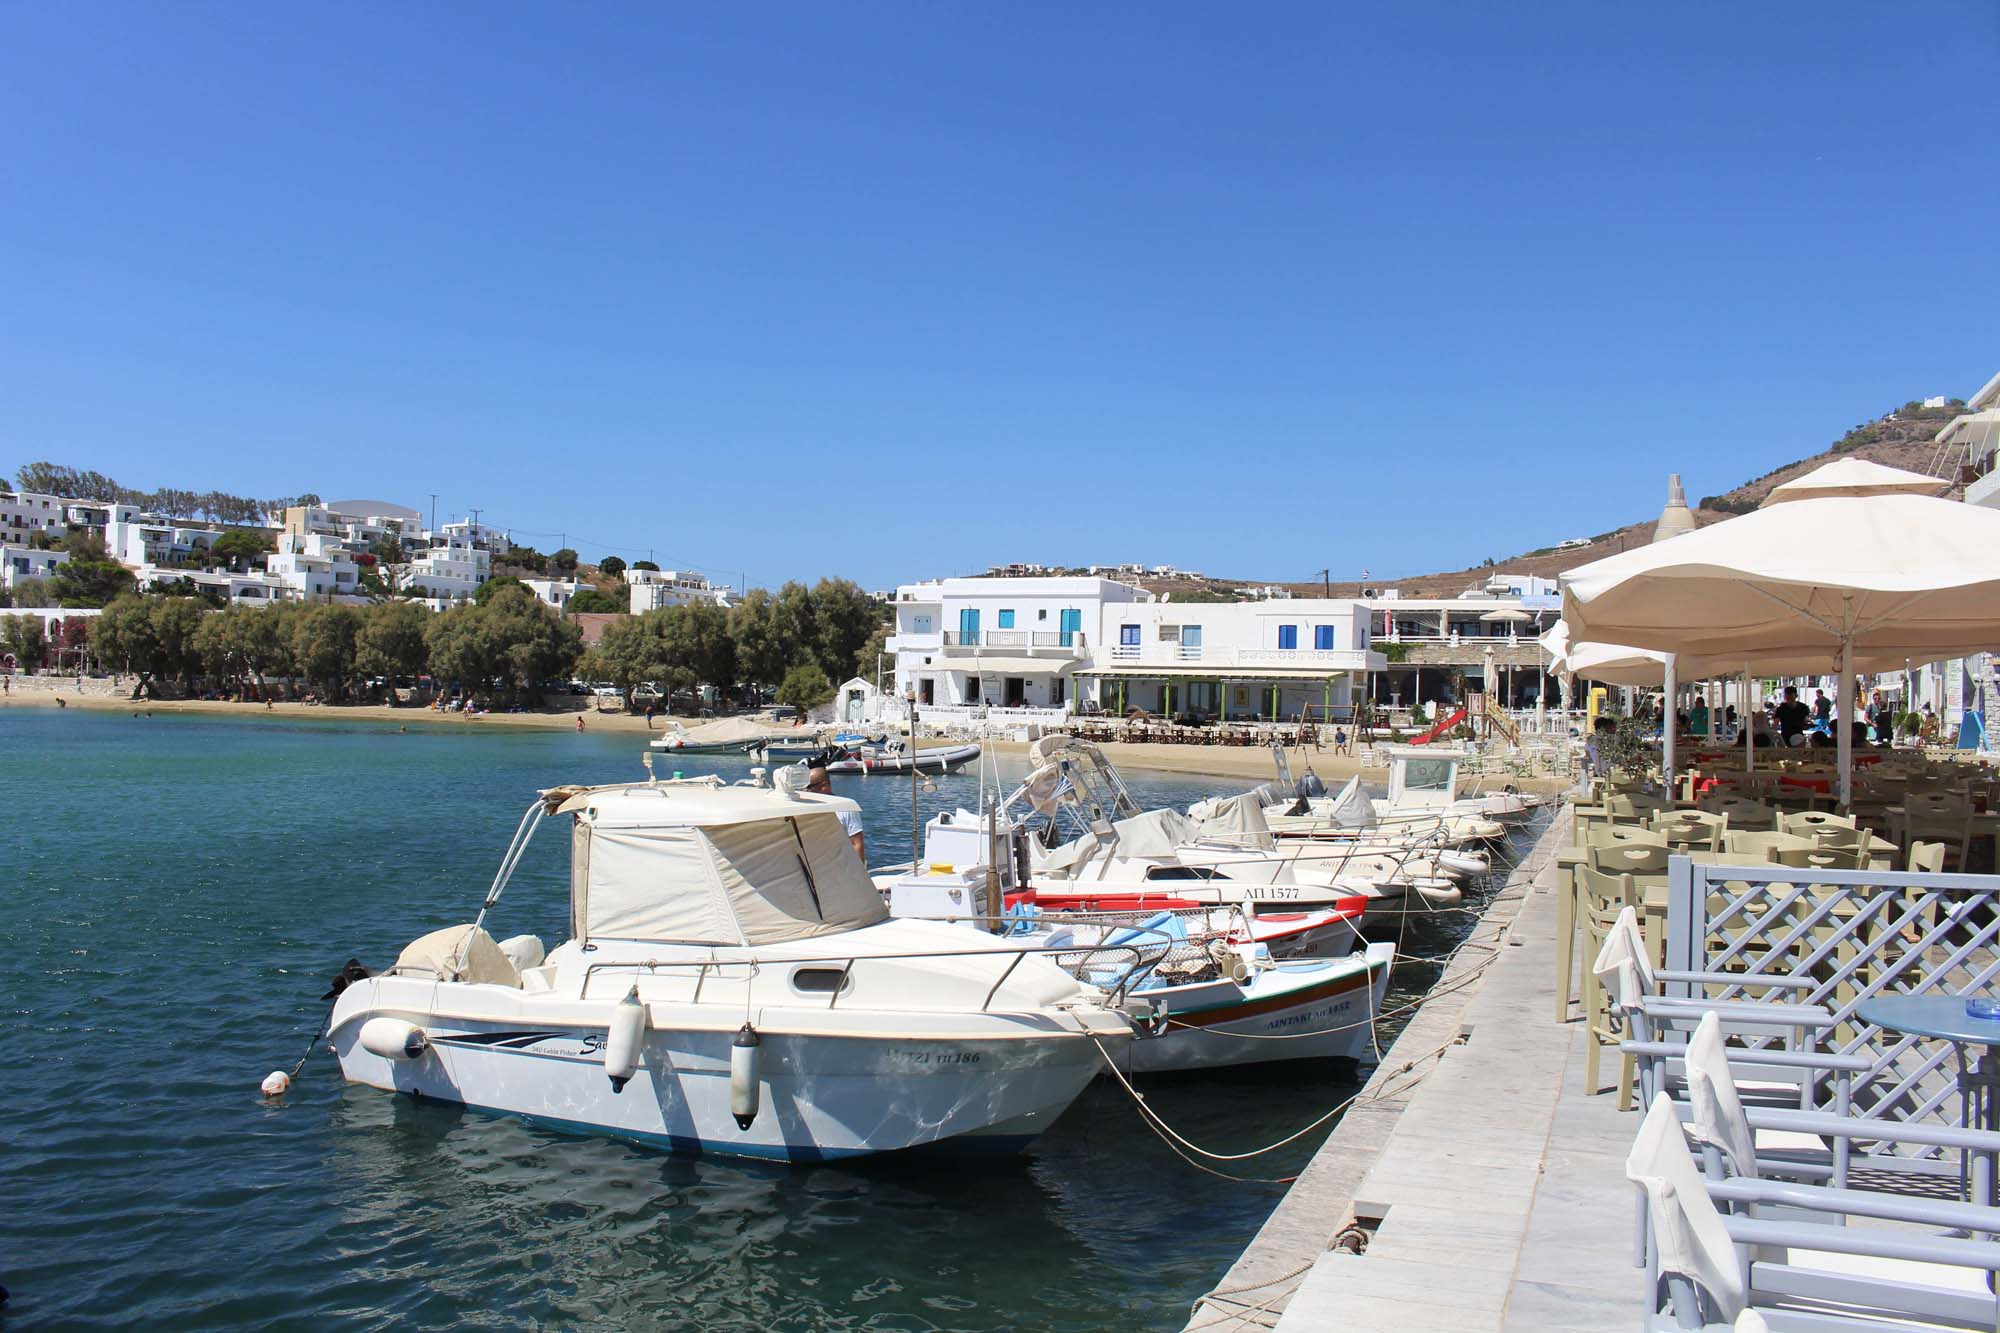 greece-paros-travel-linstantflo-17-sur-35